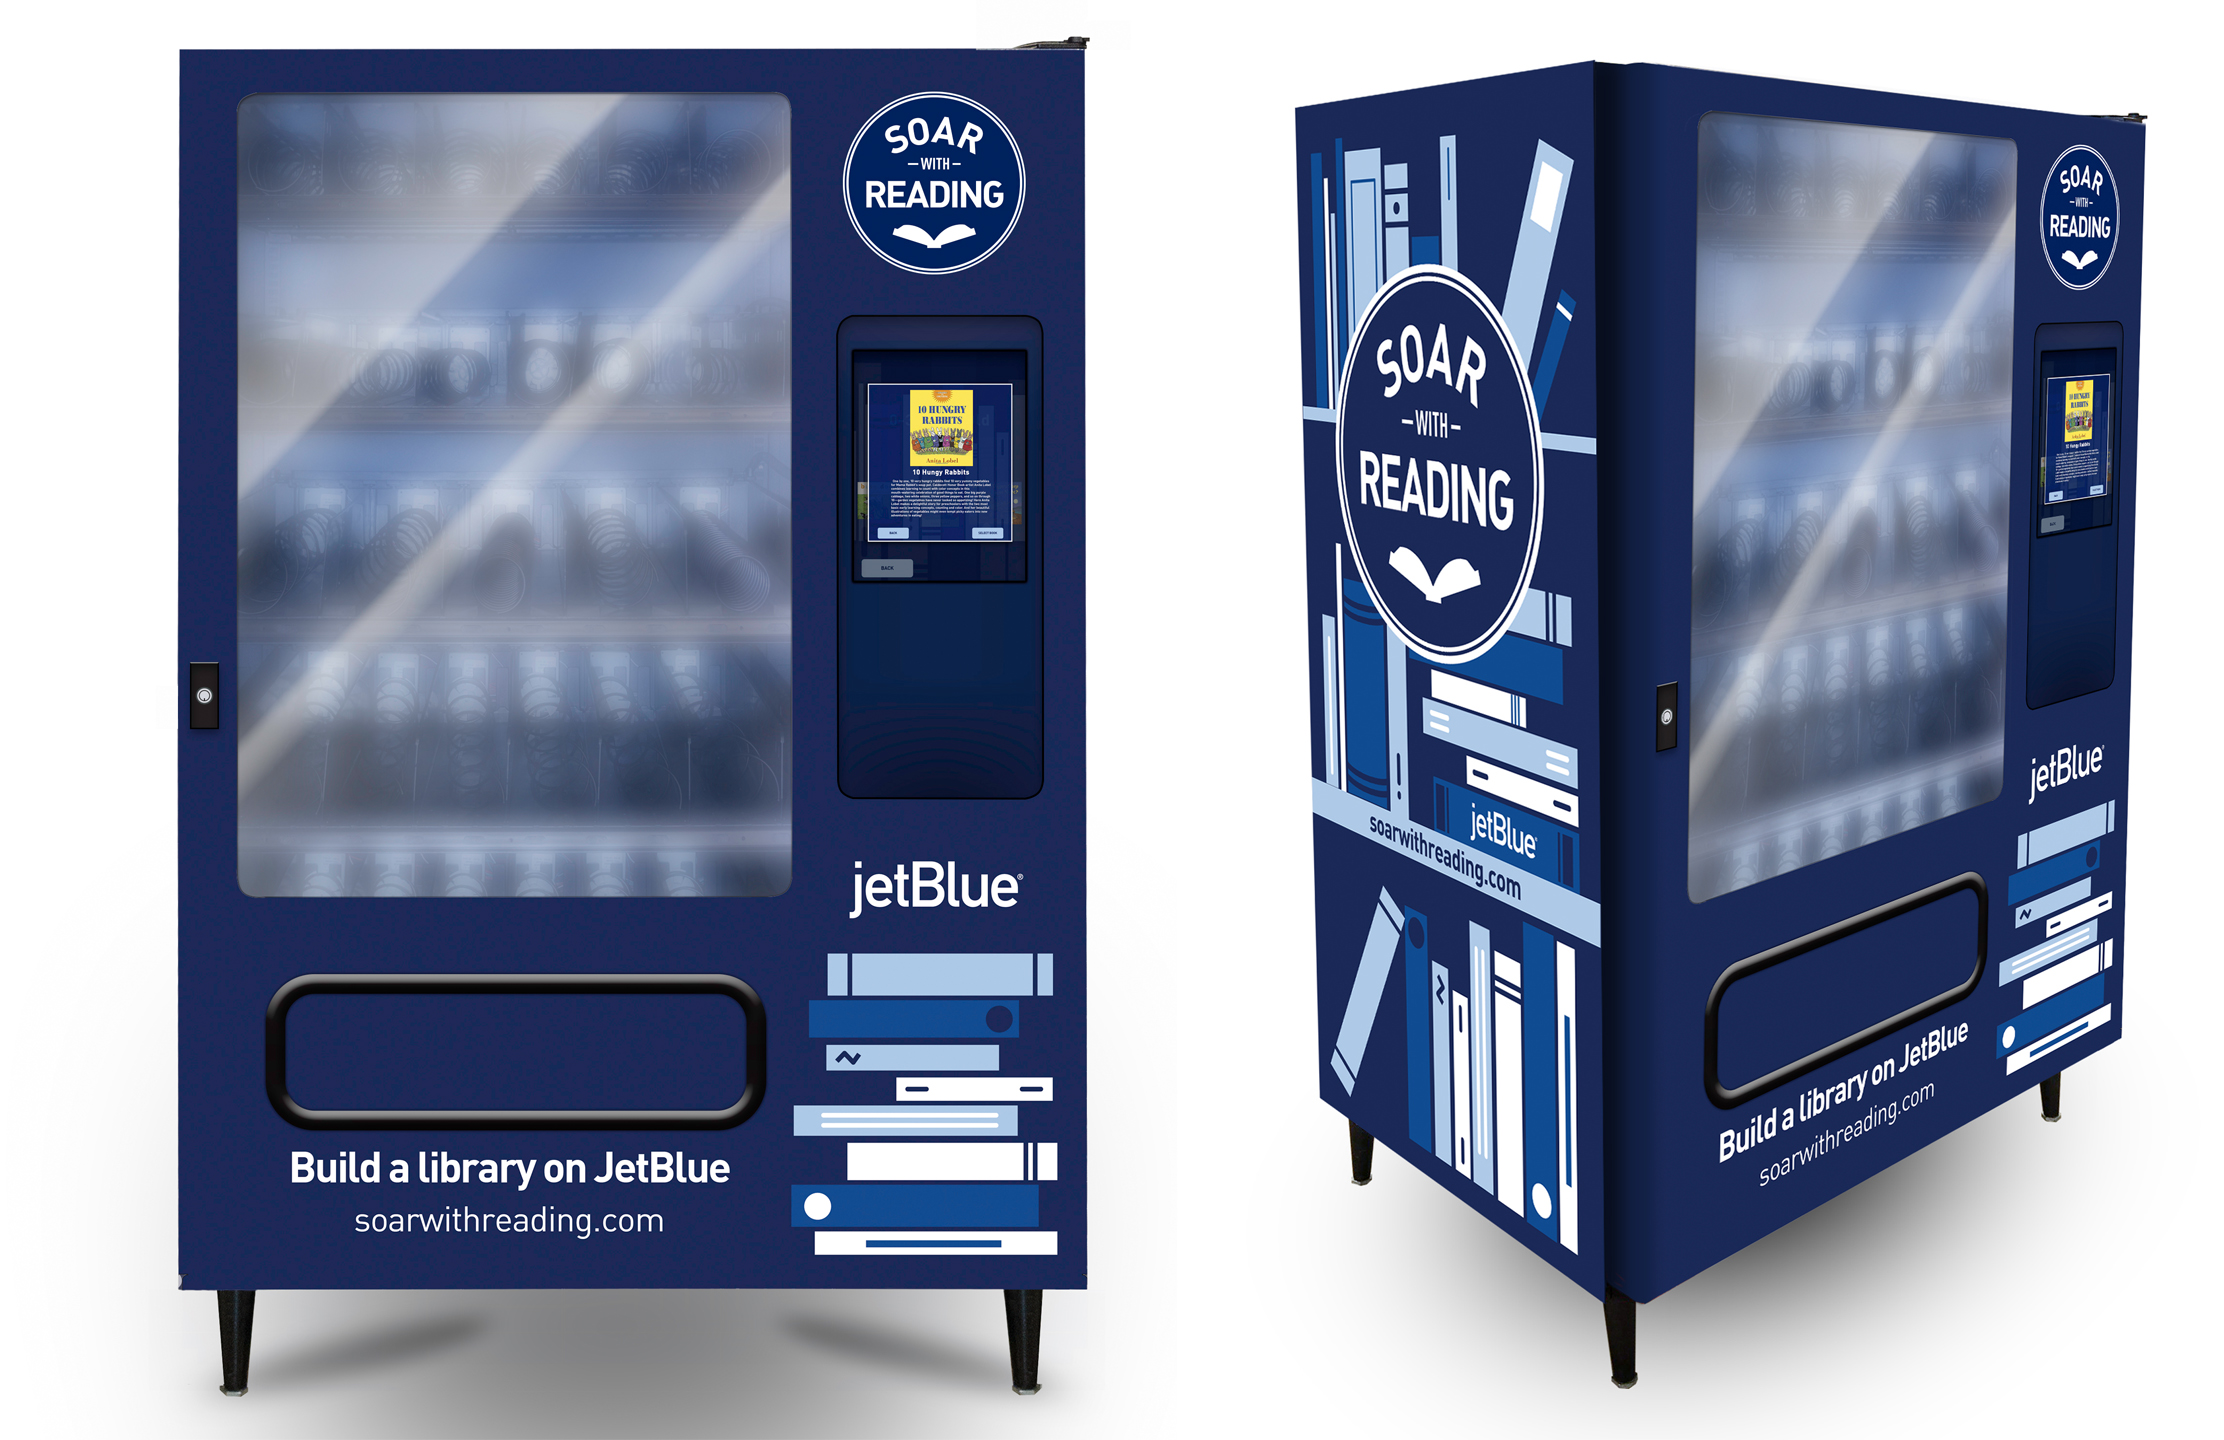 Airline Sets Up Free Book Vending Machines In Southeast D.C. - The ...